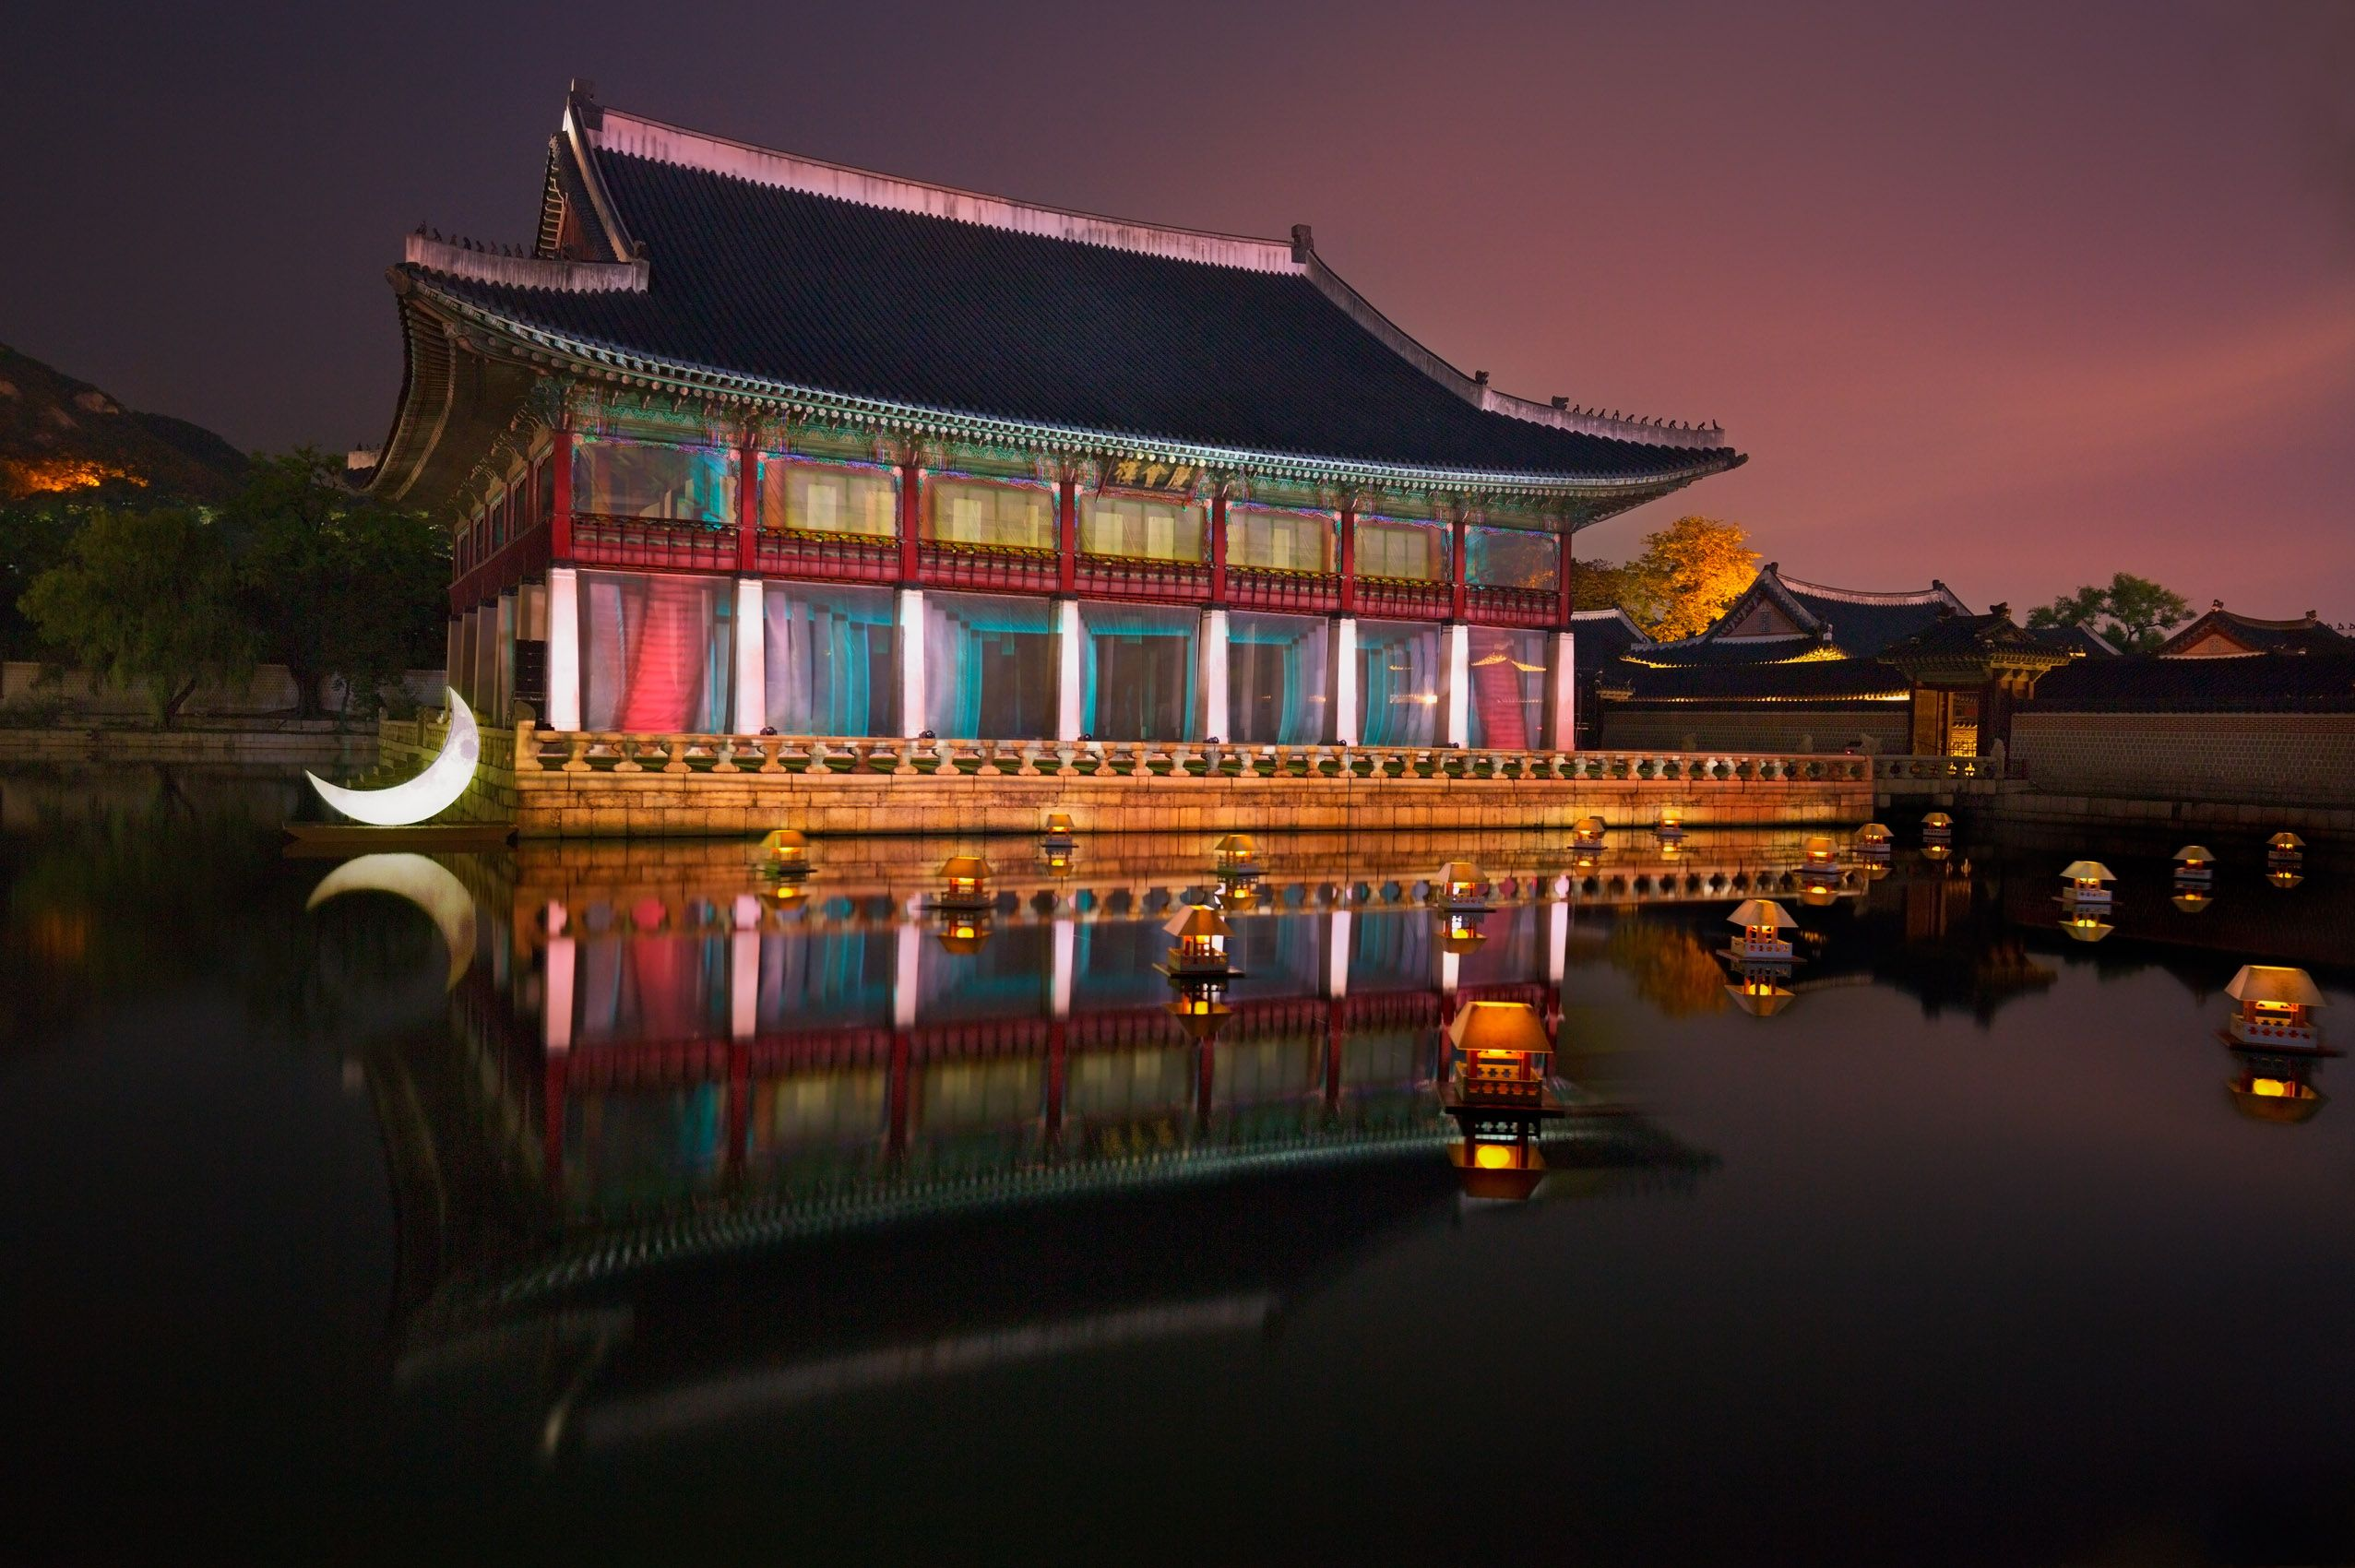 Gyeonghoeru Pavilion, Gyeongbokgung Palace After Dark